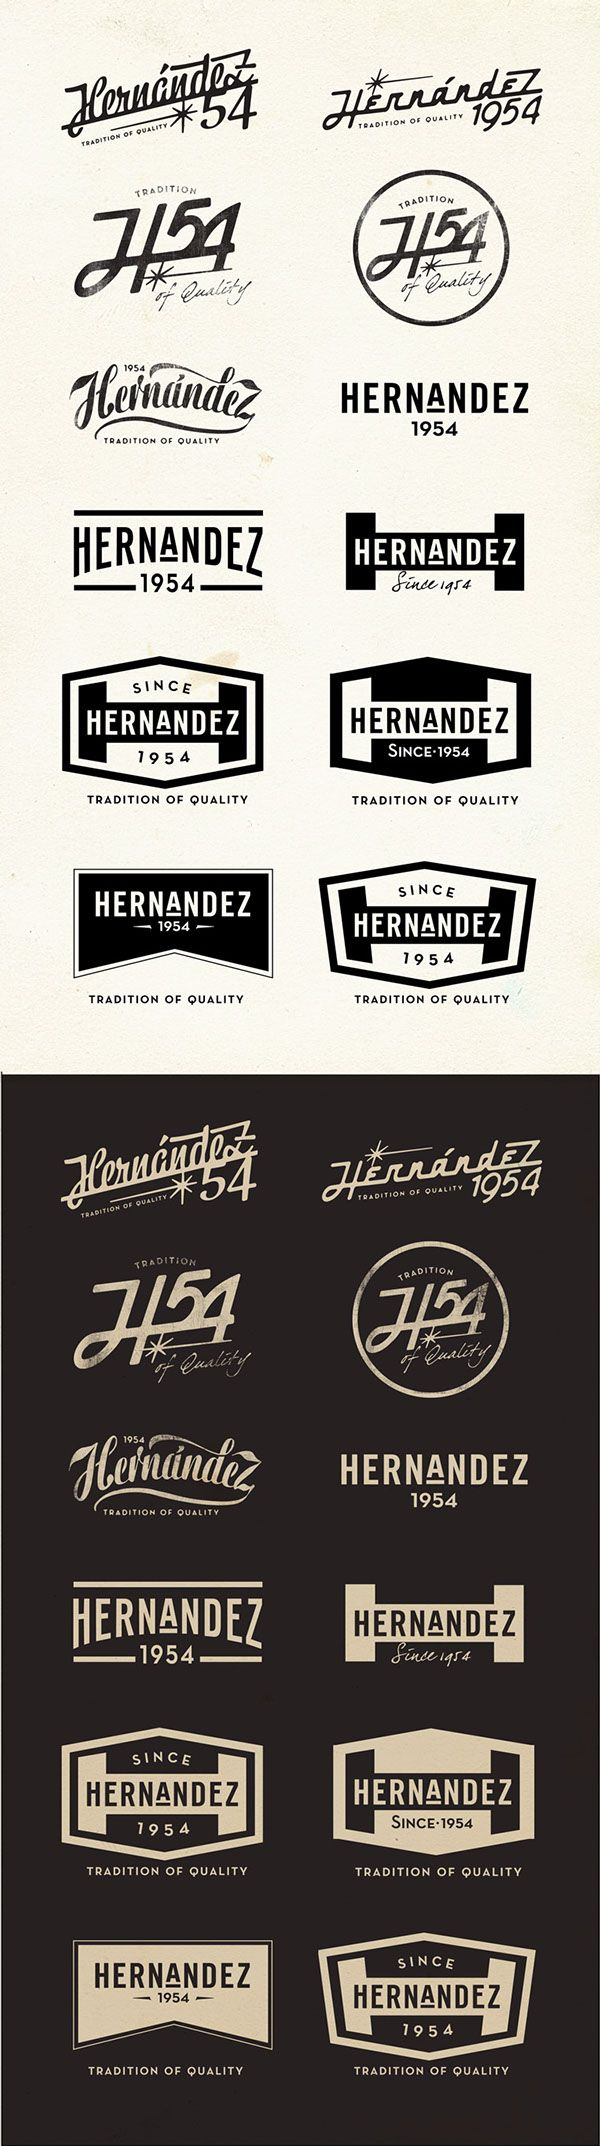 Hernandez54 Motorcycles co